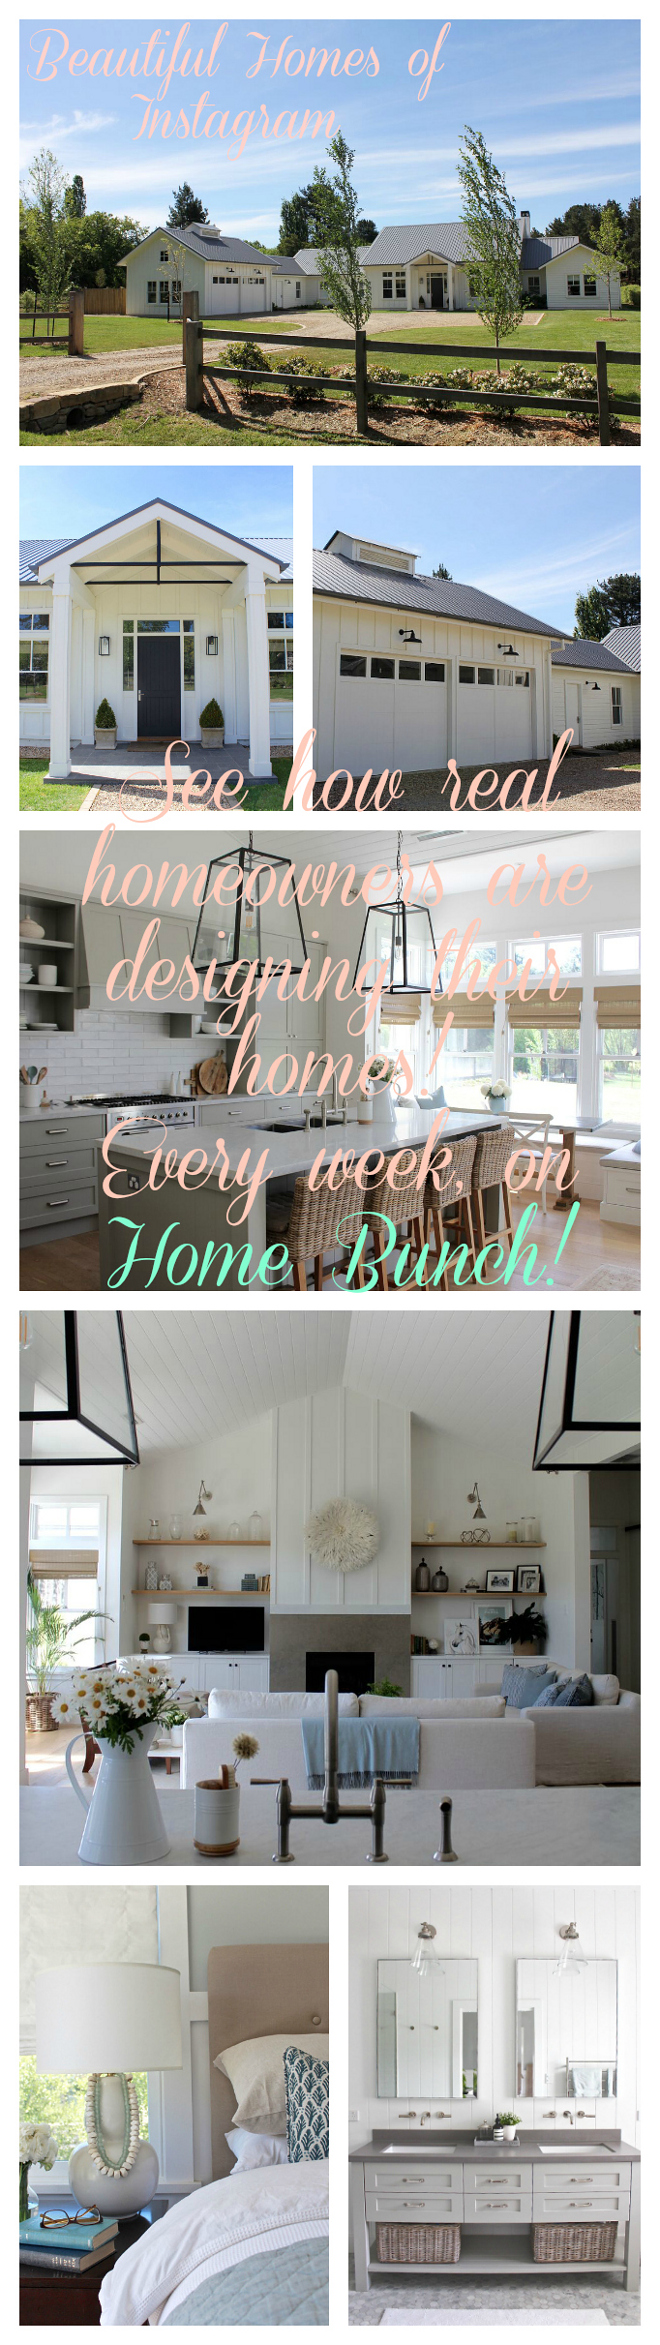 Beautiful Homes of Instagram. See how real homeowners are designing their homes. Every week on Home Bunch @urban_farmhouse_build